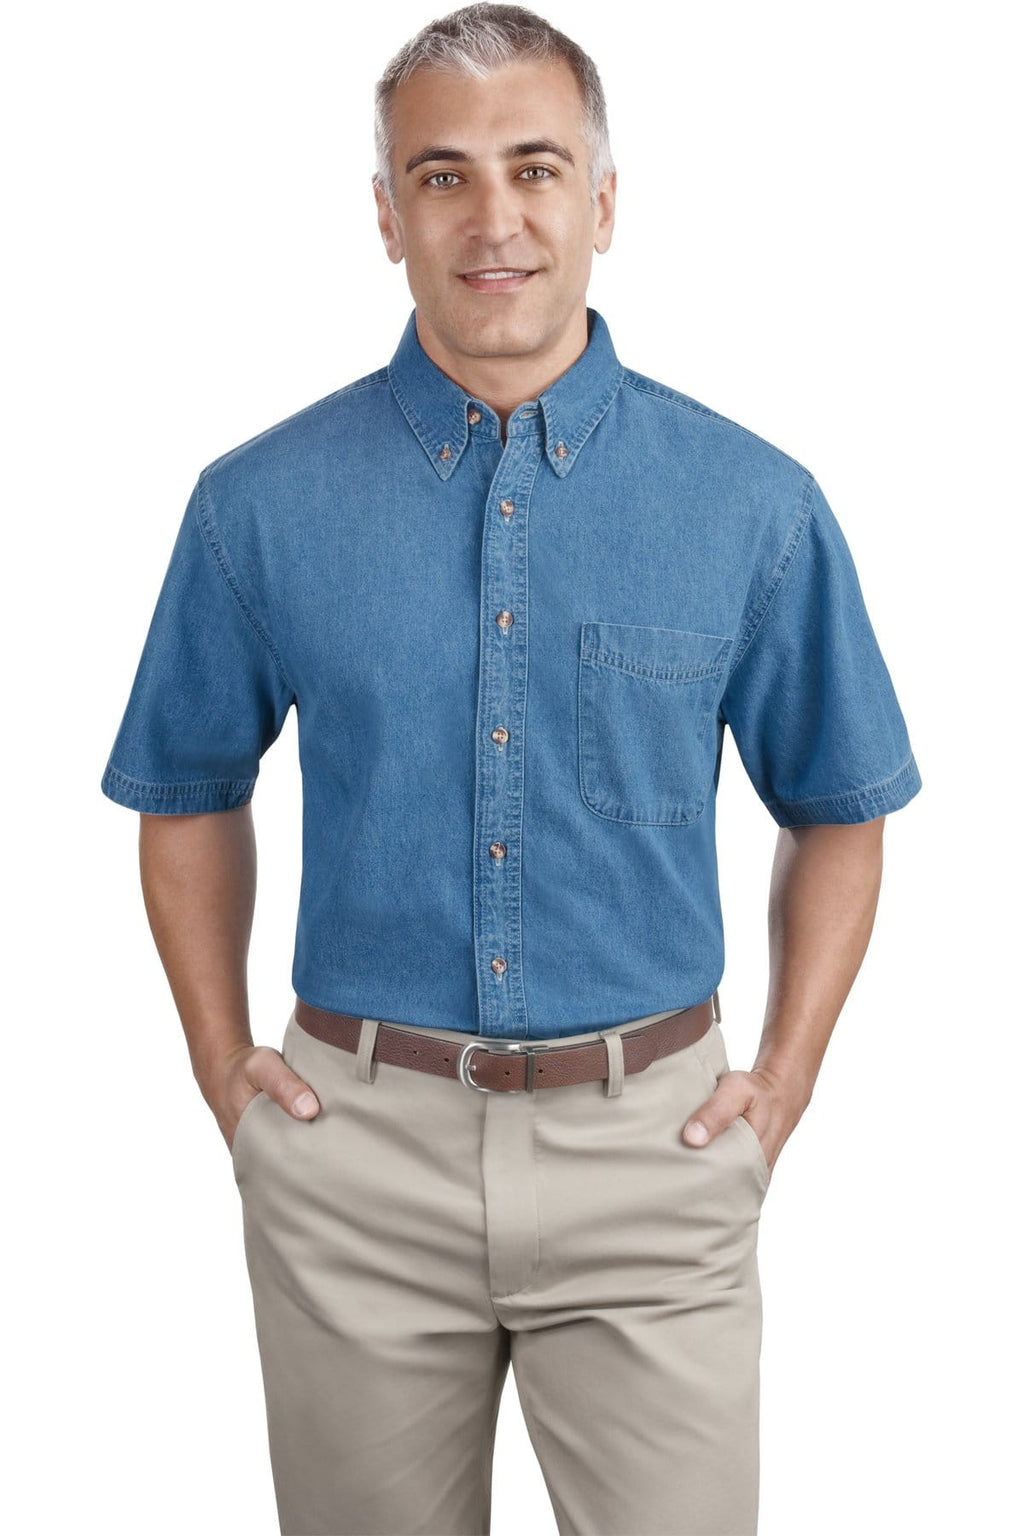 Port & Company Short Sleeve Value Denim Shirt-1